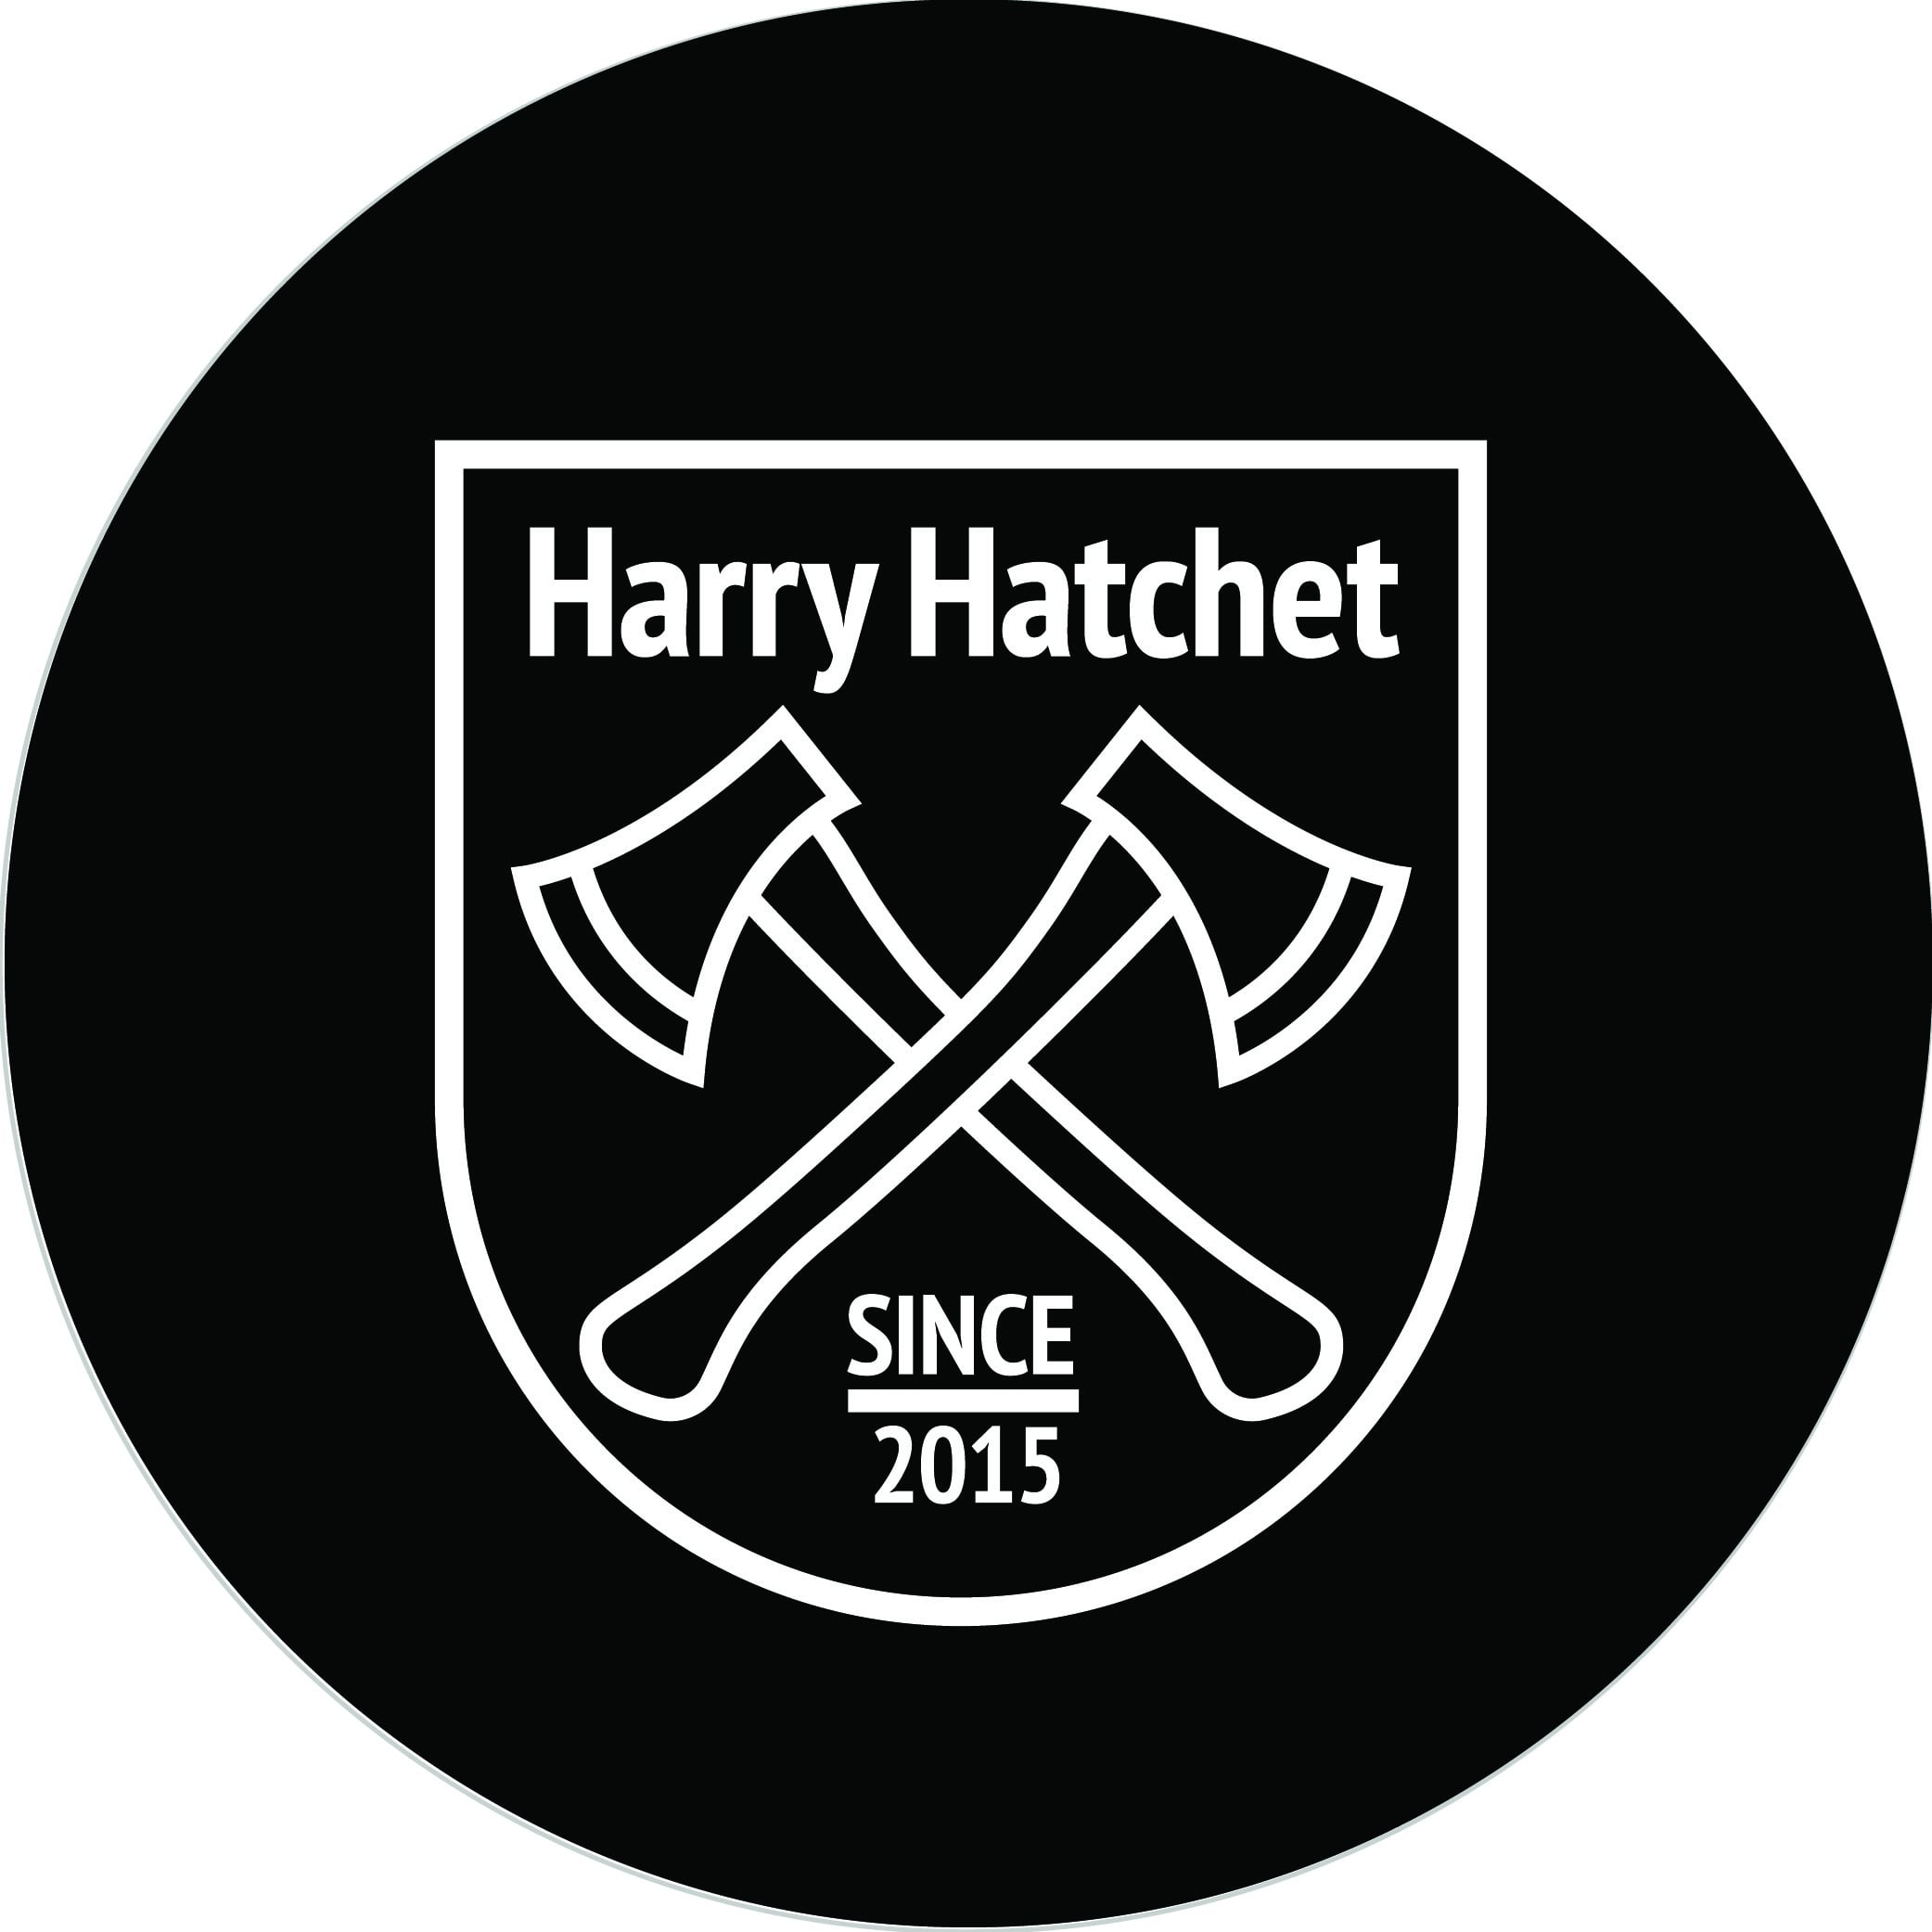 Harry Hatchet